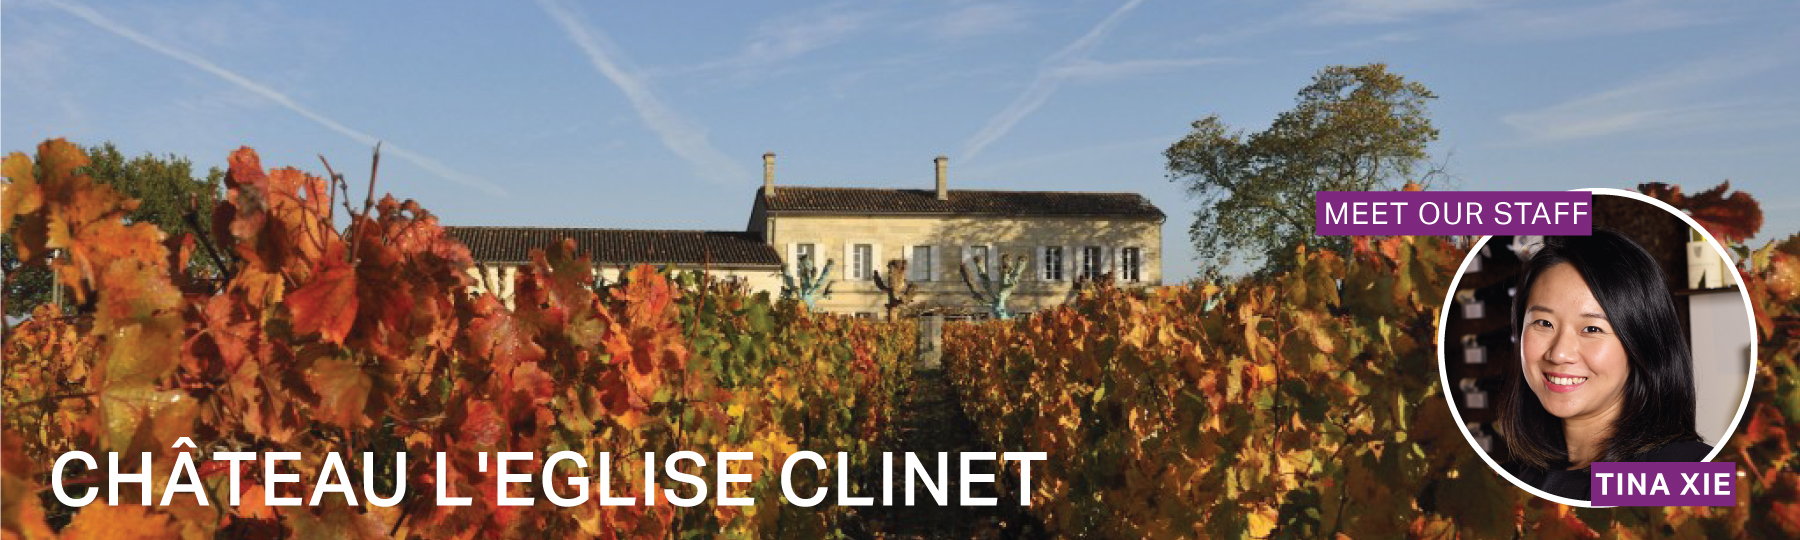 Fine Wine Friday: Château l'Eglise Clinet